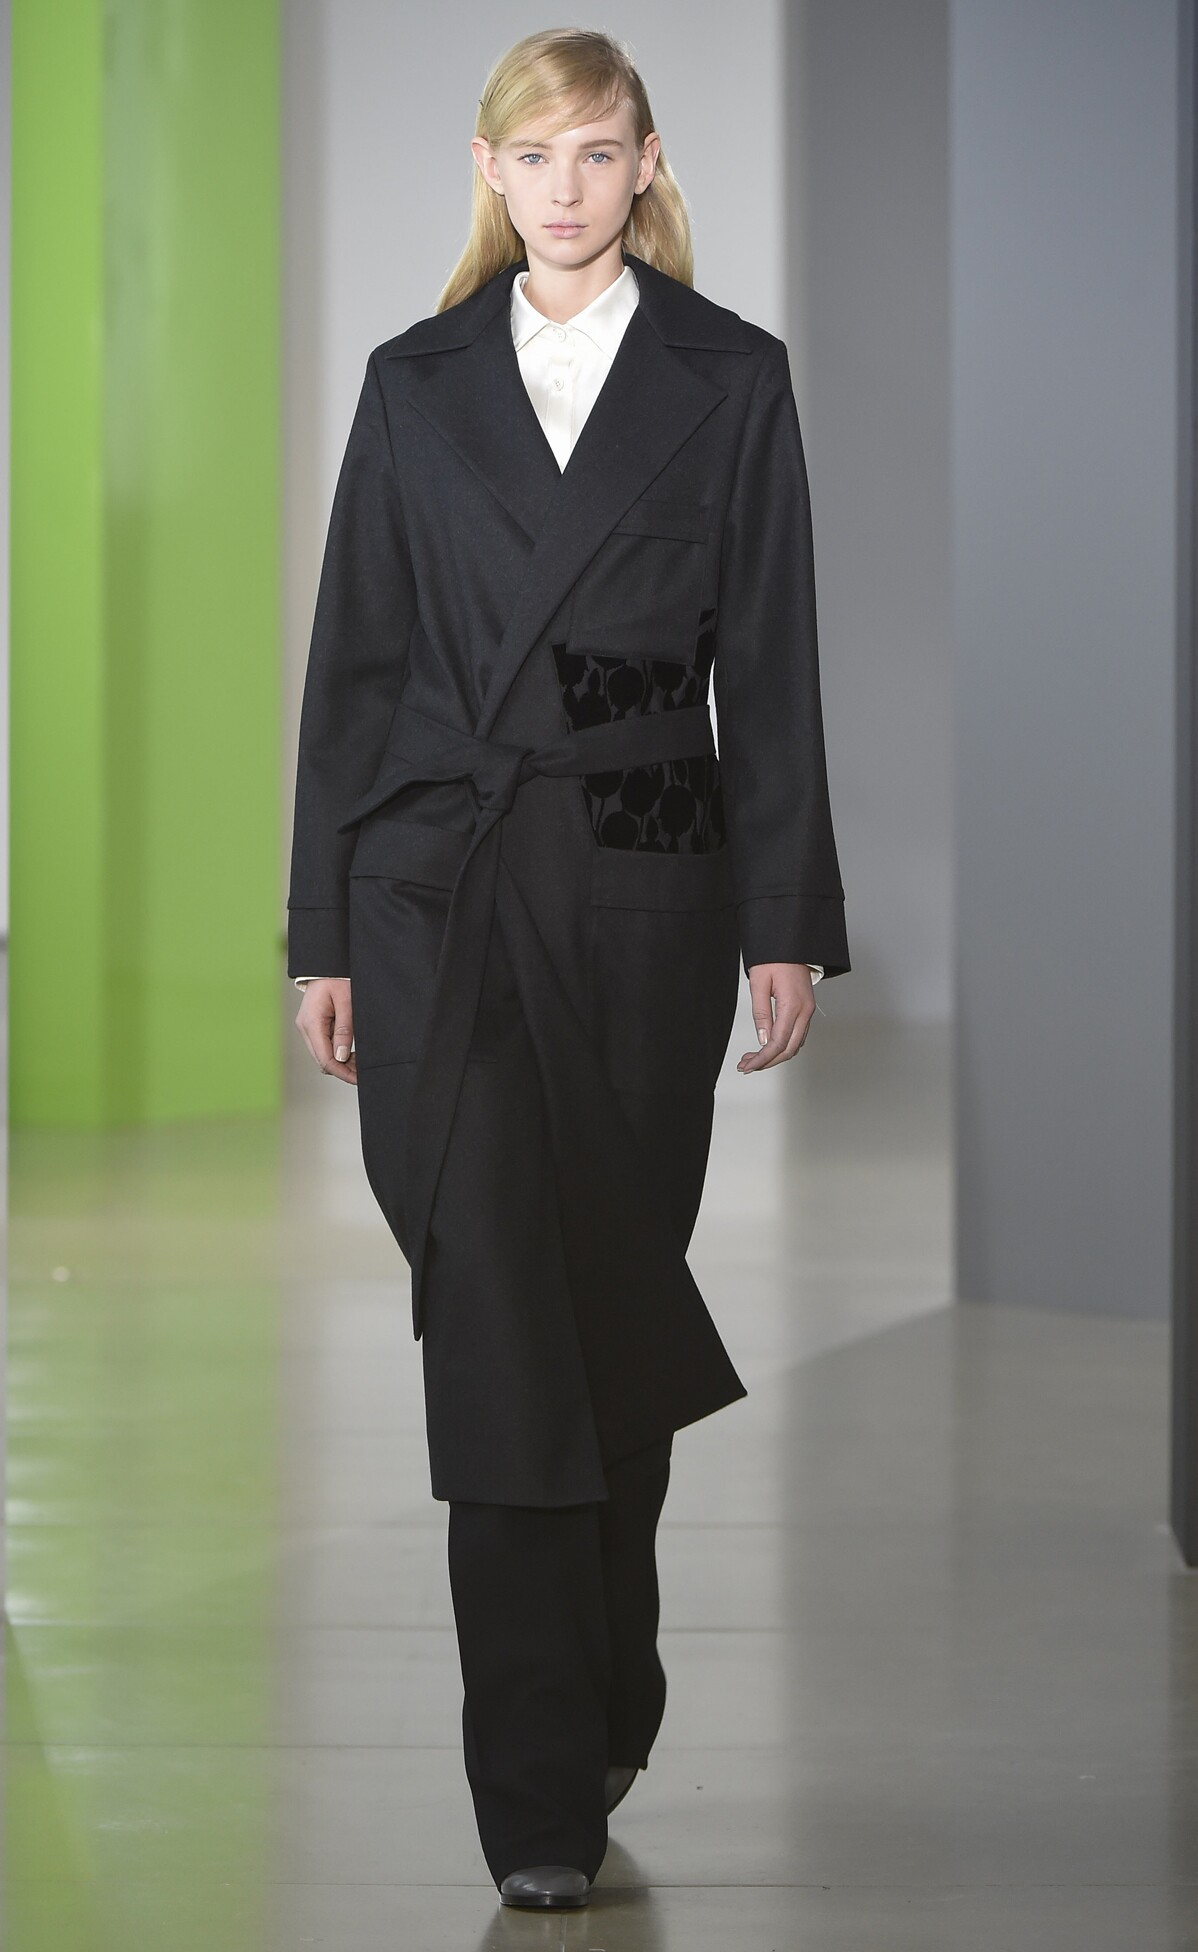 Jil Sander Fall Winter 2015 16 Women's Collection Milan Fashion Week